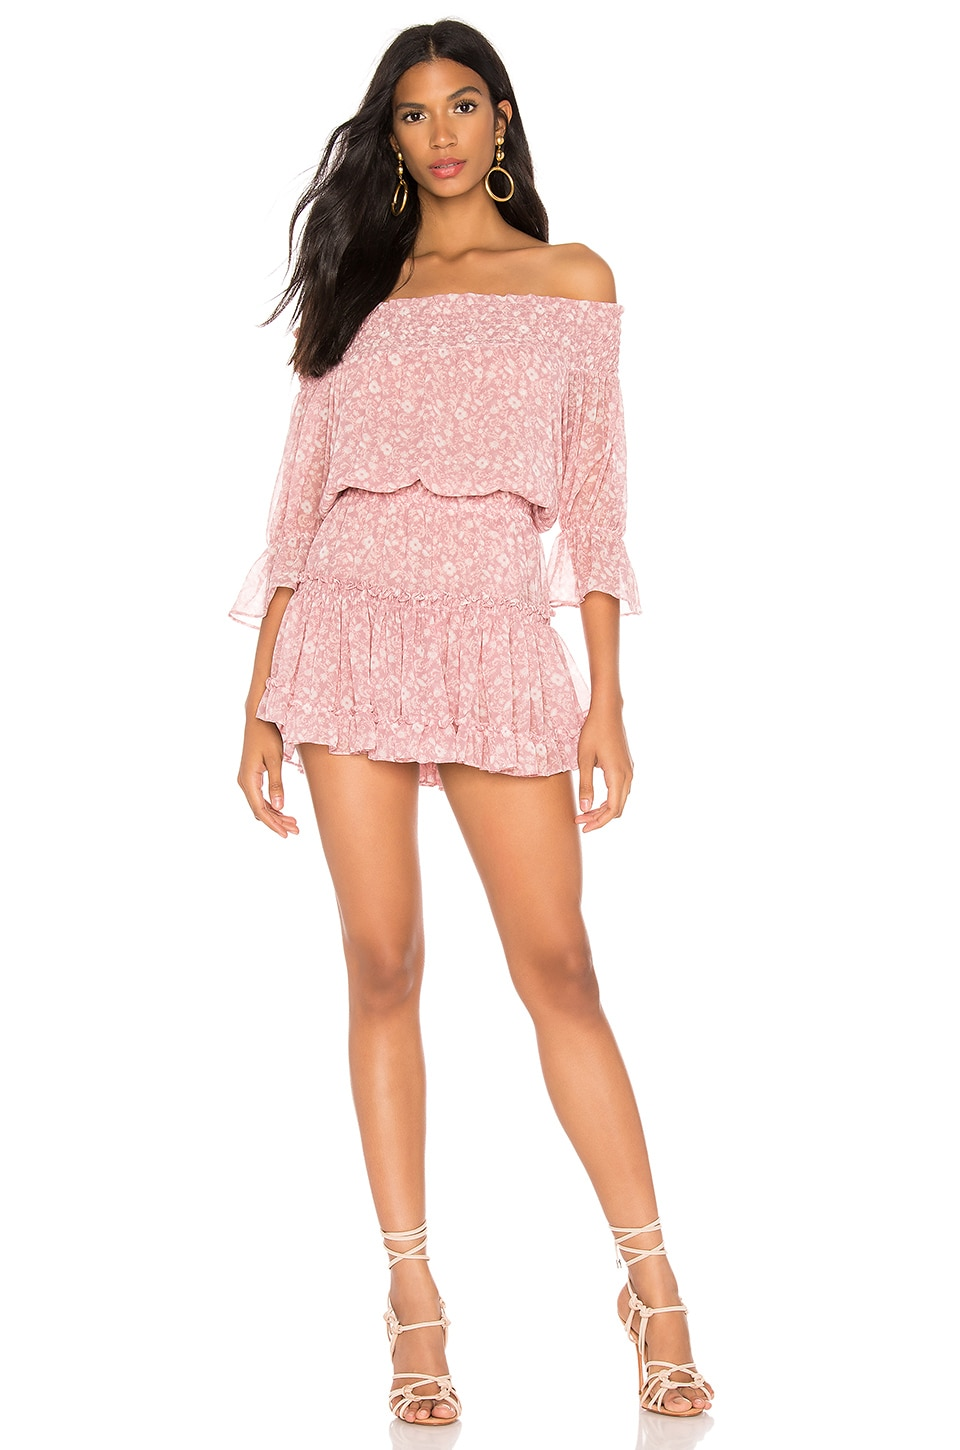 MISA Los Angeles X REVOLVE Darla Dress in Pink Floral